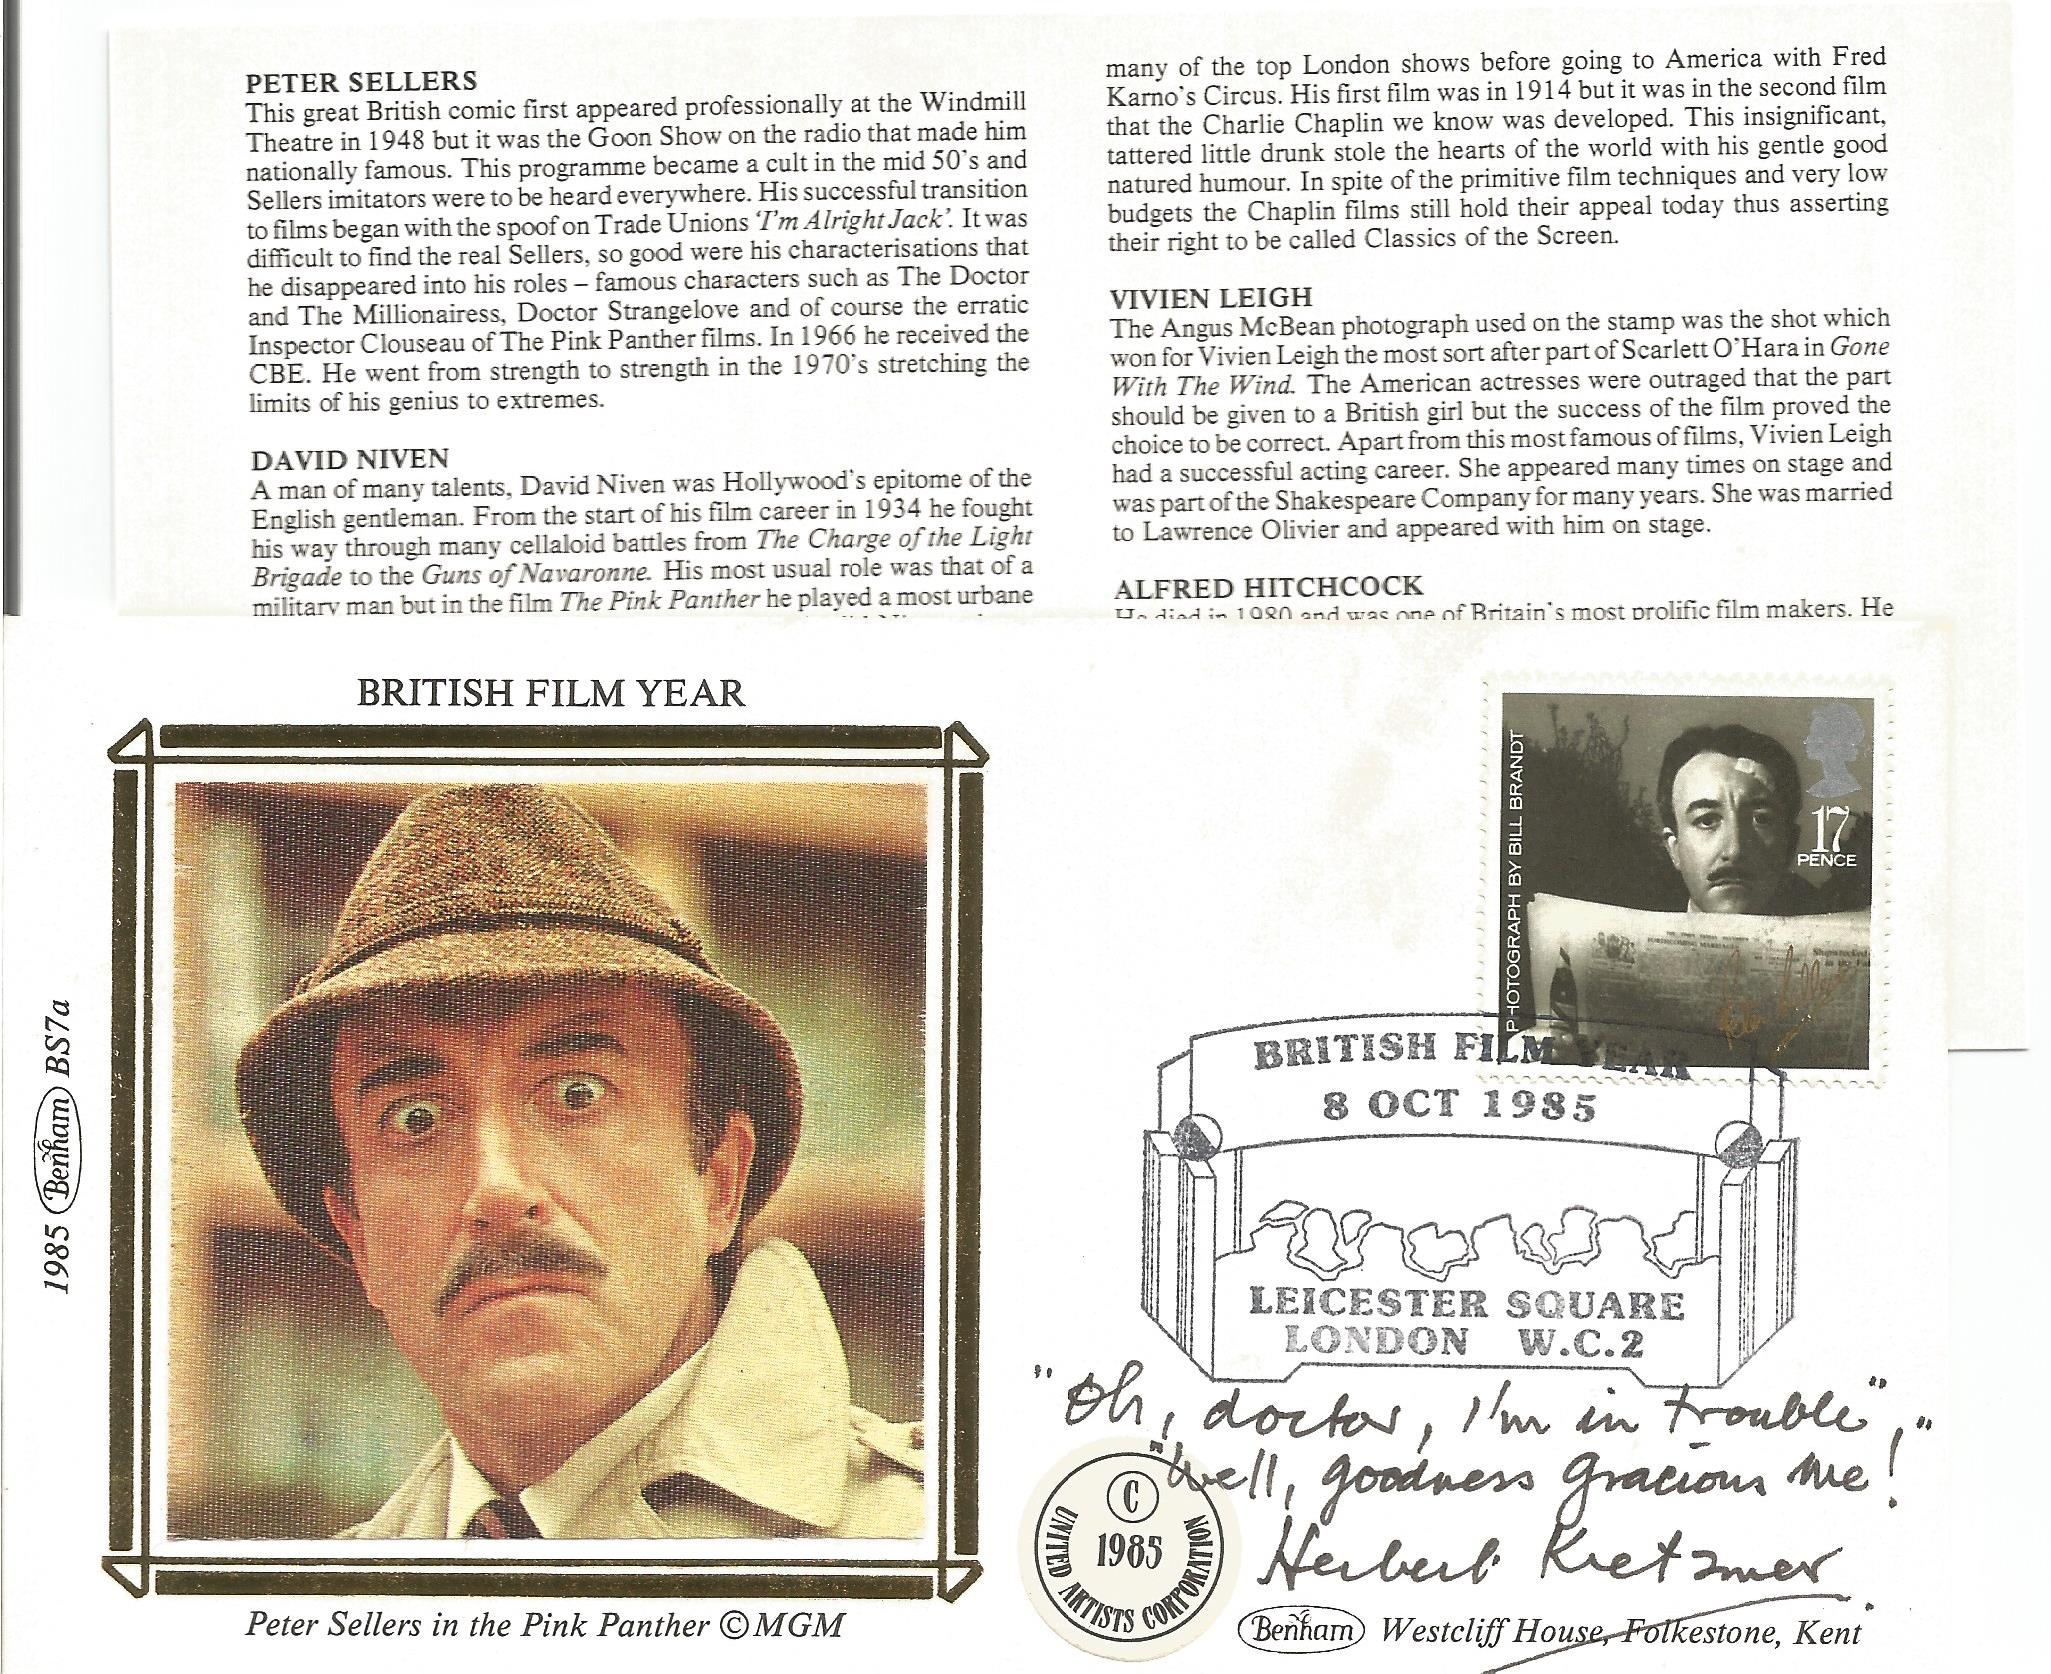 Herbert Kretzmer signed FDC inscribed with lyrics from his song Goodness Gracious Me in the 1960s